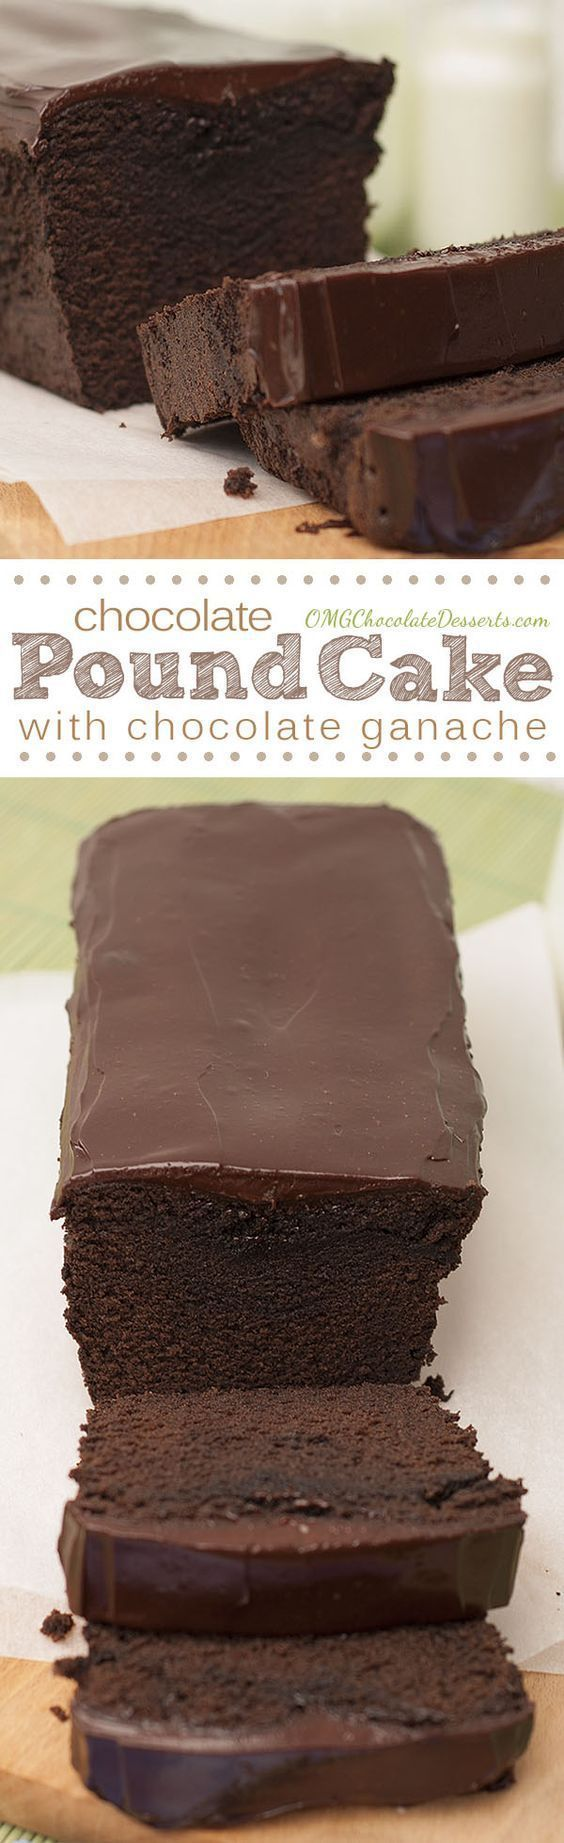 Chocolate Pound Cake Loaf with Chocolate Ganache Recipe via OMG Chocolate Desserts ... this recipe is rich, delicious and perfectly moist- a chocolate lover's dream!